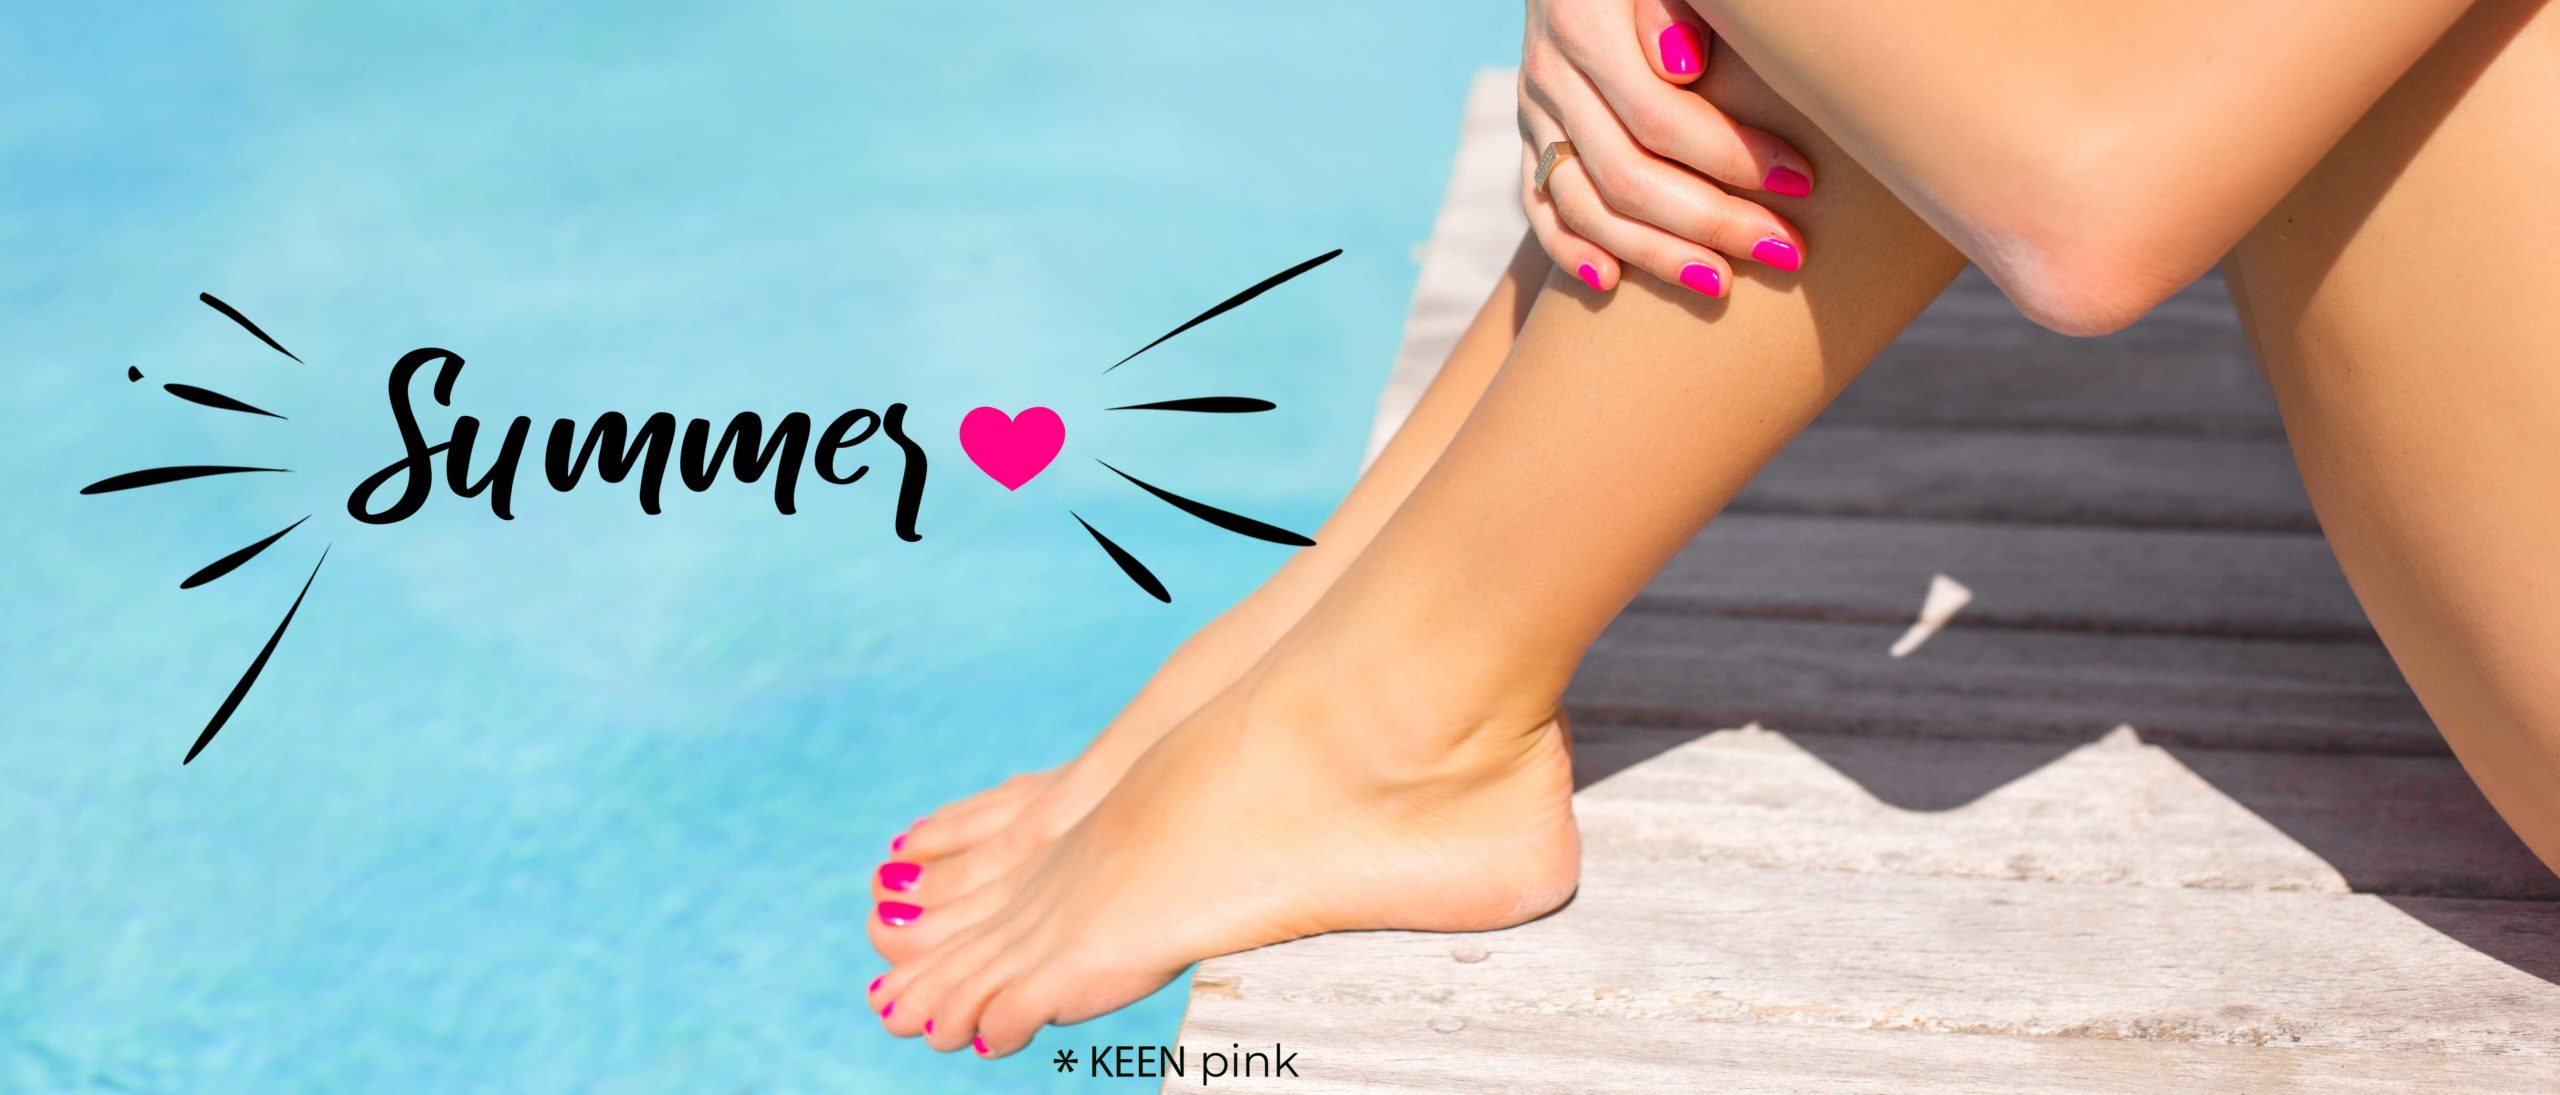 Pool keen summer sale 2 scaled